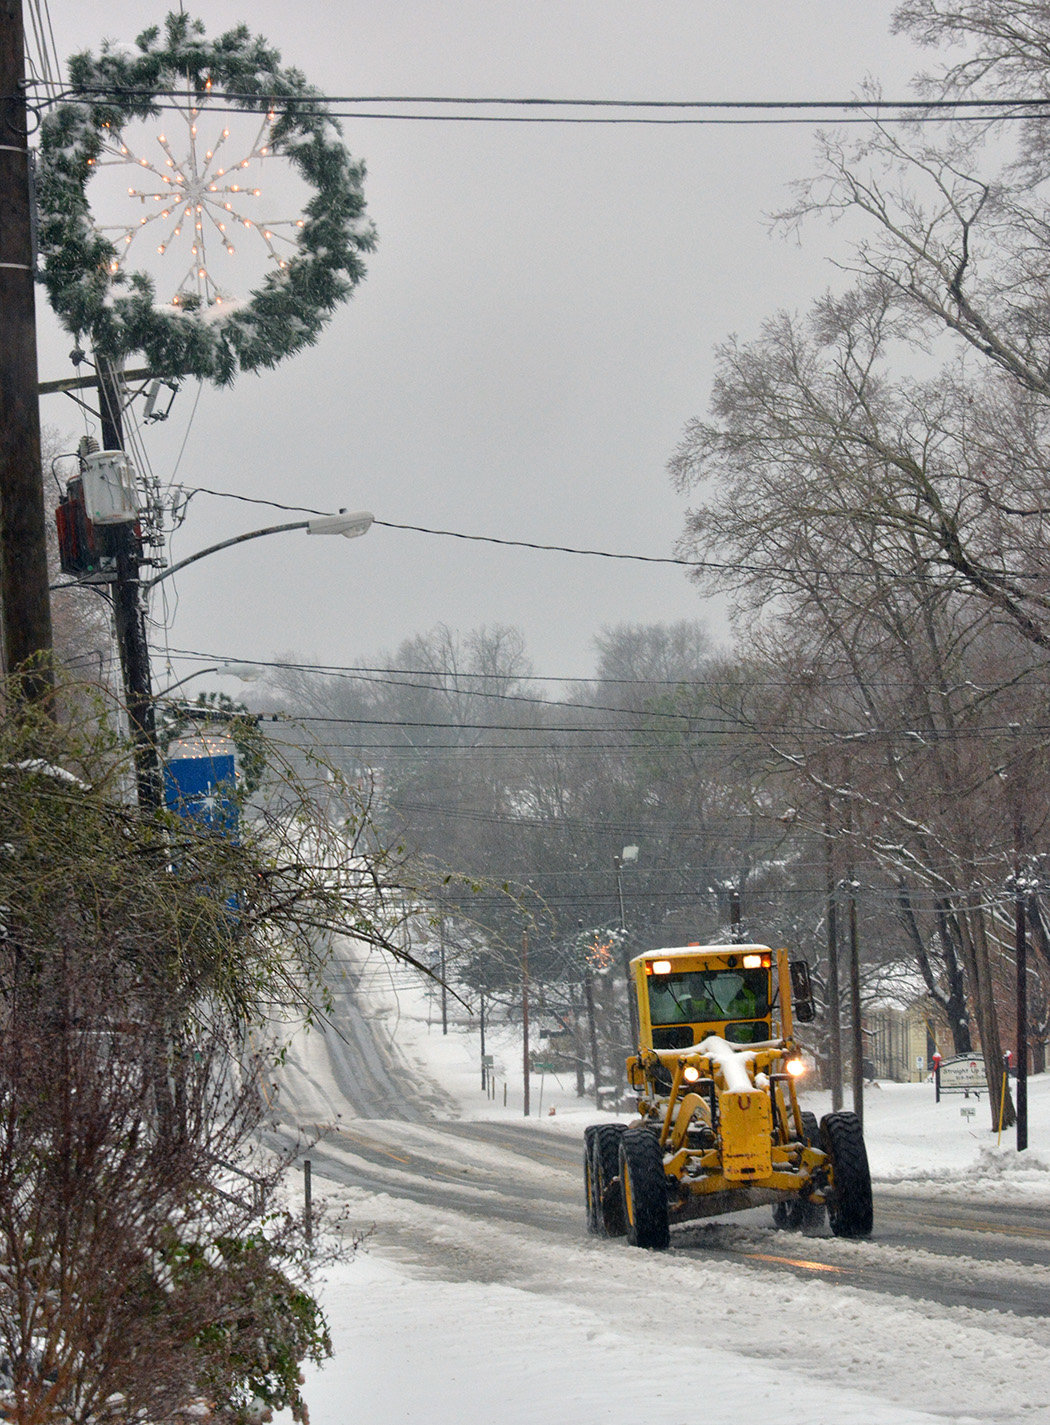 In Pittsboro, the Christmas decorations lit the way for a motor grader to clear another Chatham road.